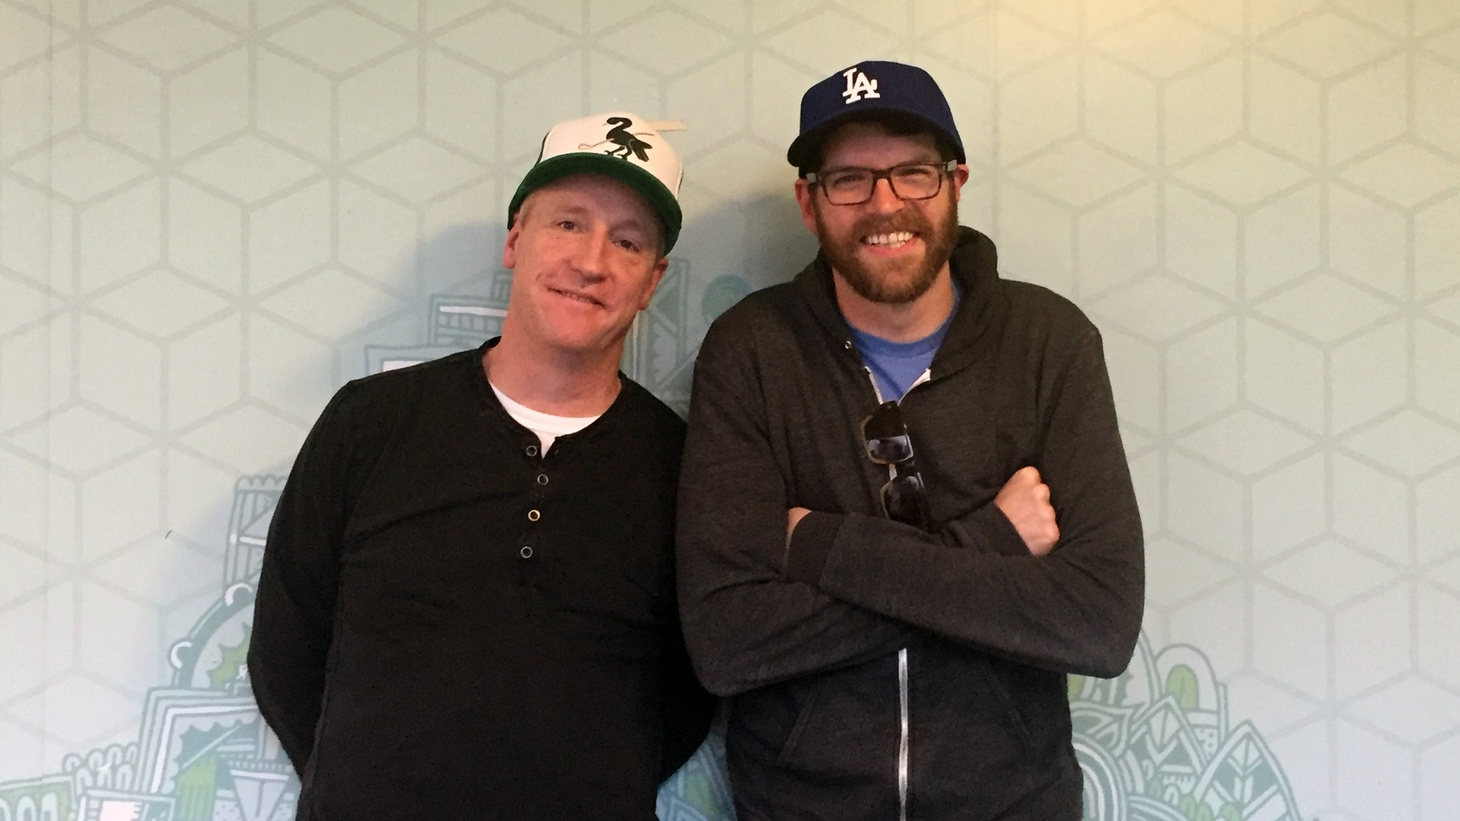 Matt Walsh and Timothy Simons play Mike McLintock and Jonah Ryan, respectively, on HBO's Veep. They tell us about the experience of starring in a show about a dysfunctional government in the middle of a crazy election year, and working in a new location with a new showrunner for Season 5.